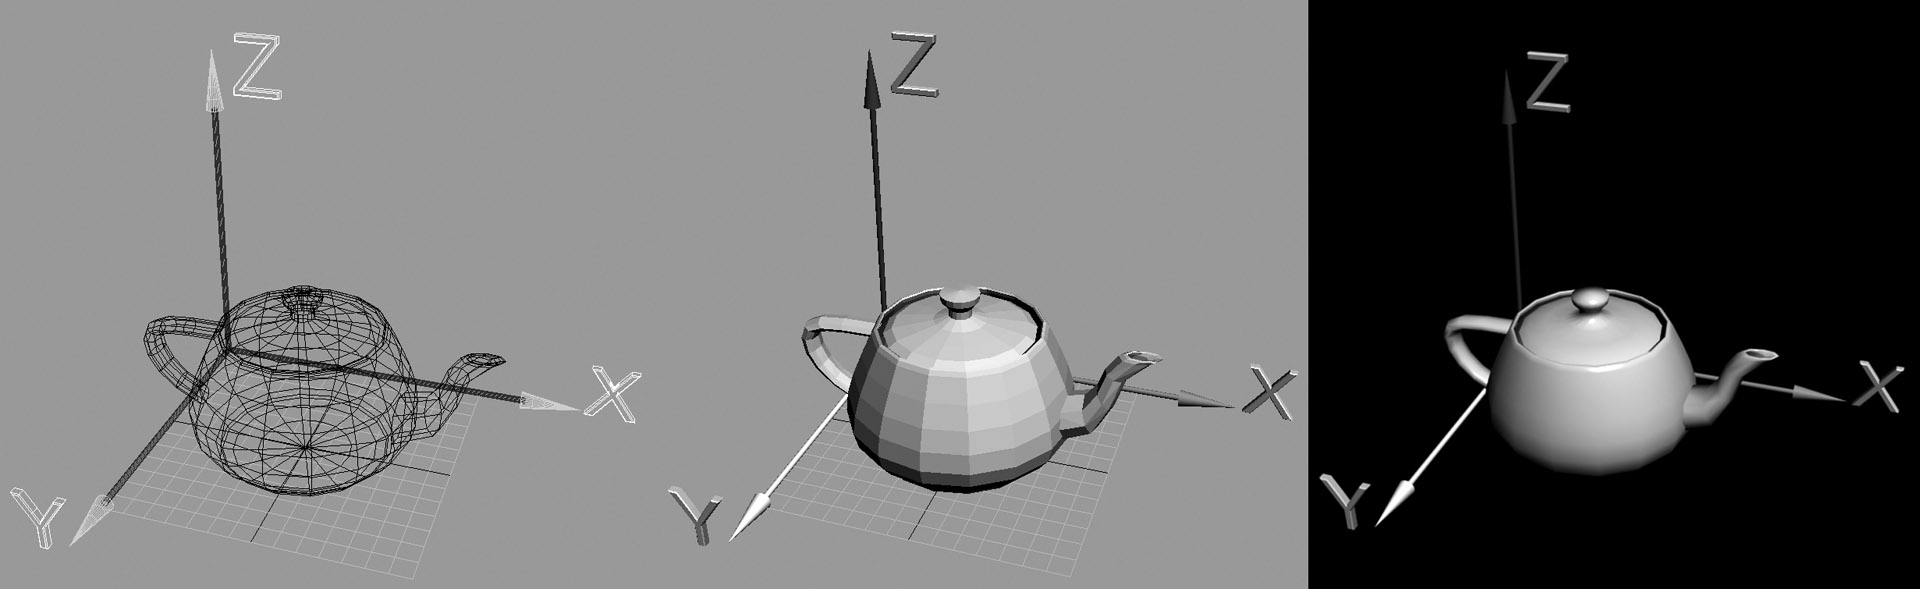 A teapot in three frames; wireframe, preview, and final render.